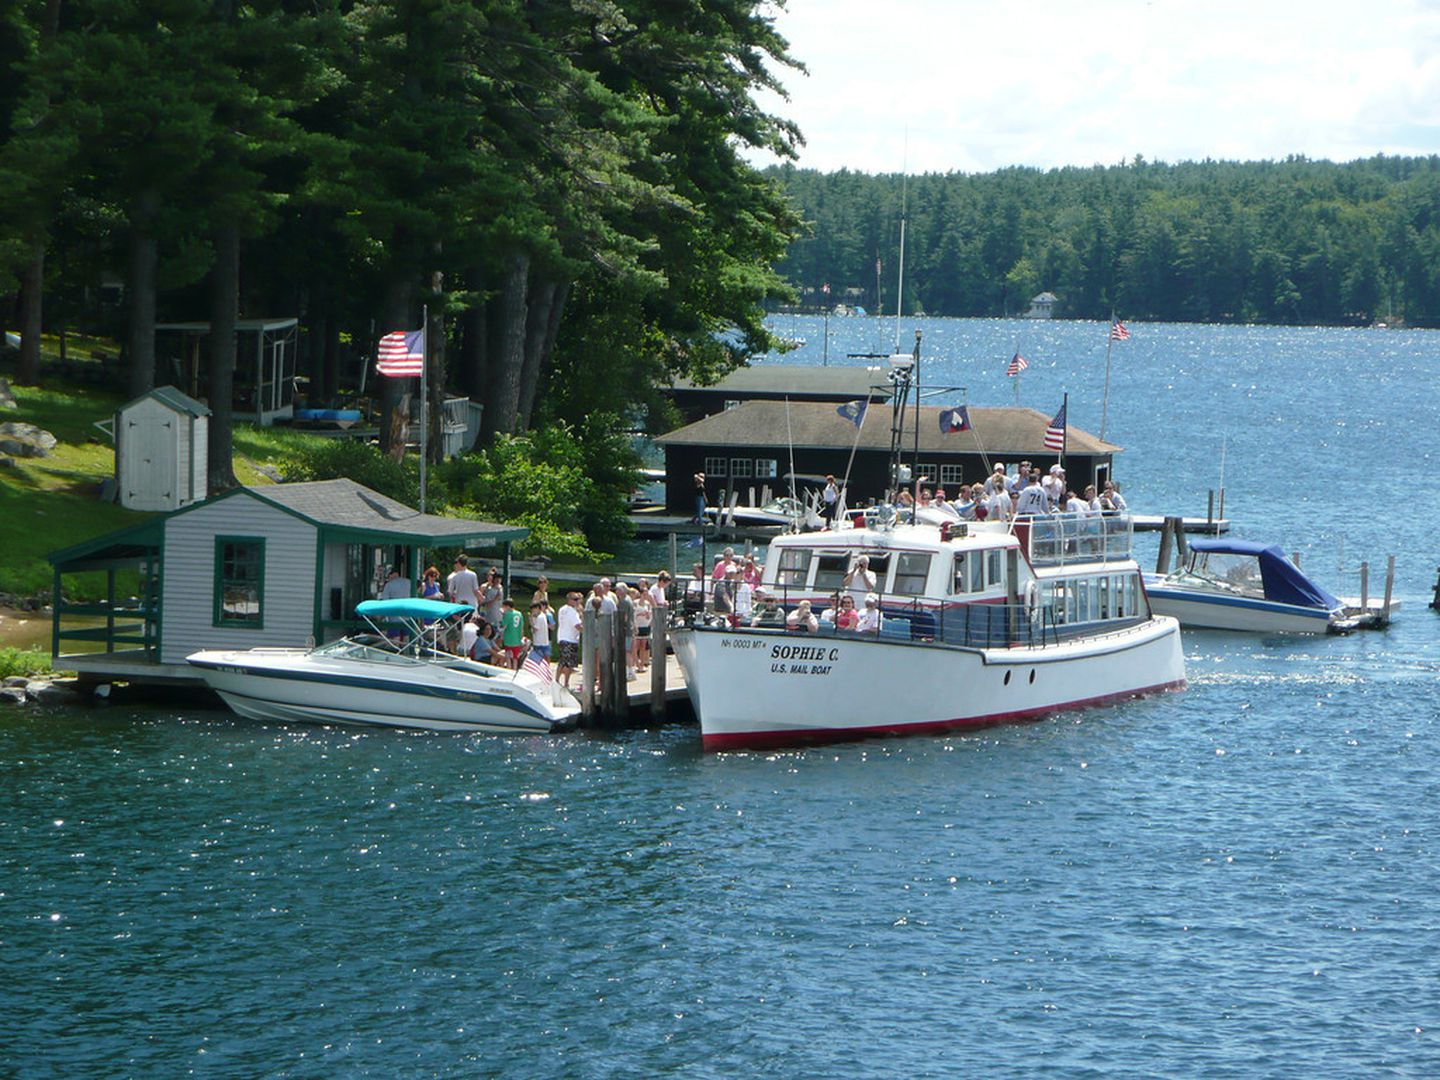 The mail boat Sophie C. on a delivery to Bear Island in Lake Winnipesaukee.